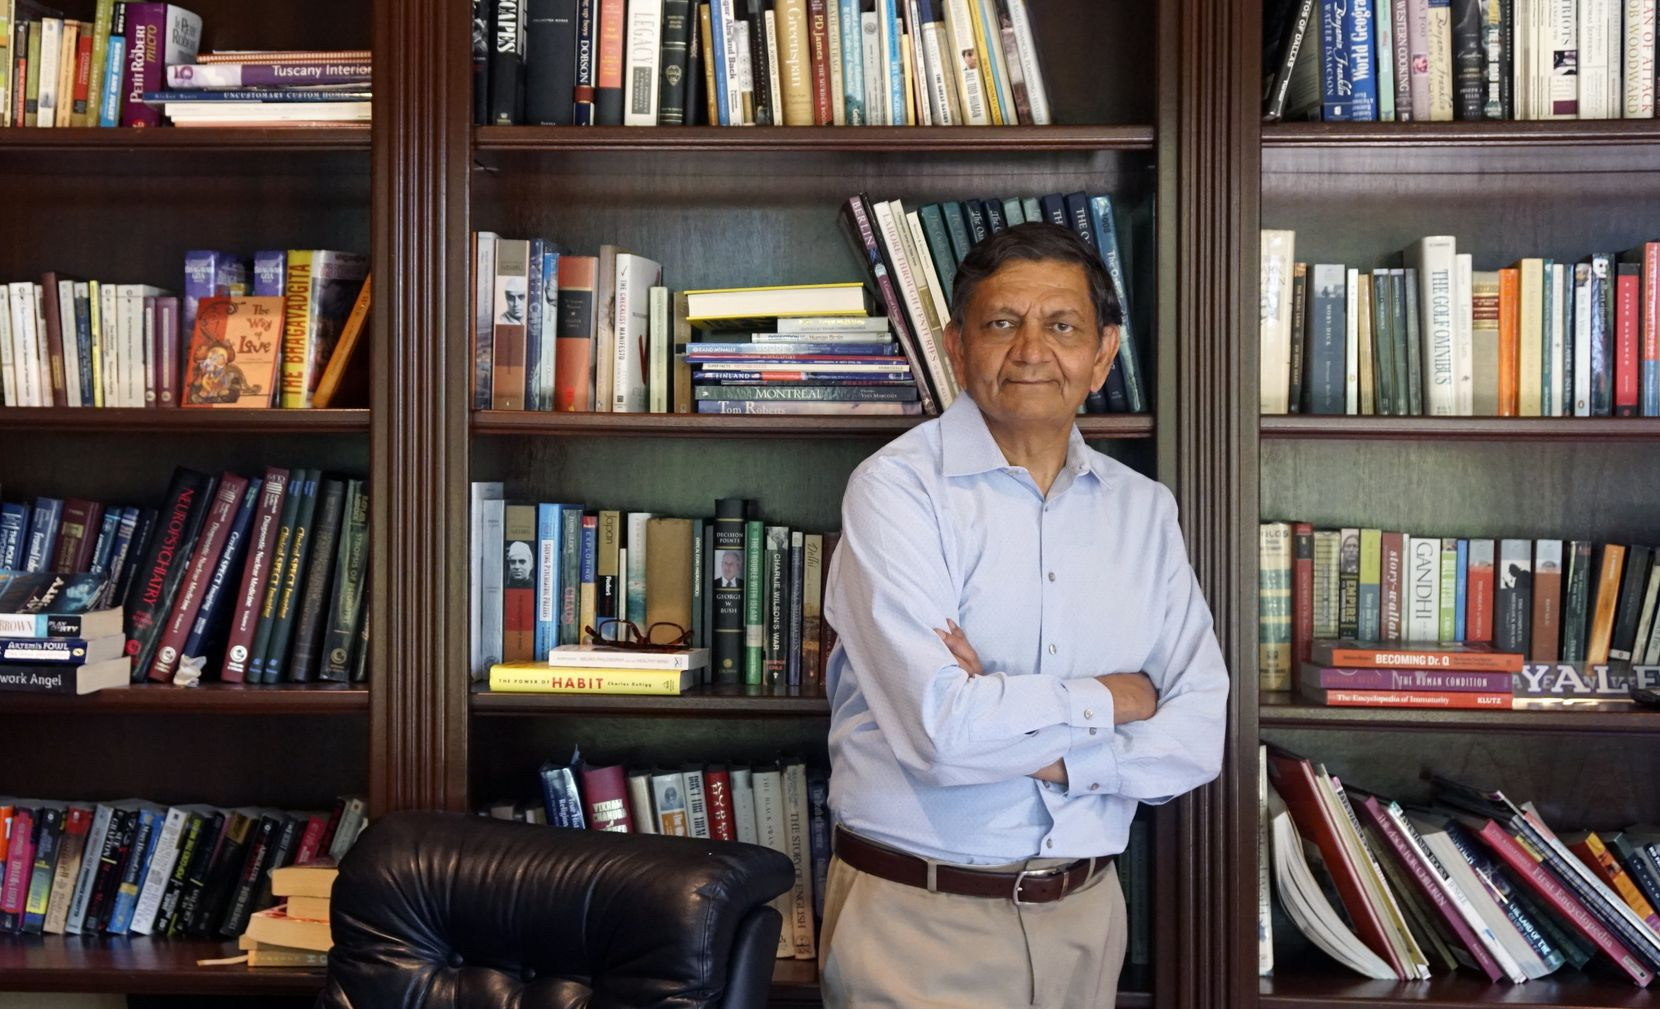 """Dr. Madhukar Trivedi, director of the Center for Depression Research and Clinical Care at UT Southwestern Medical Center. """"There aren't enough beds, there aren't enough intensive outpatient programs,"""" he said. """"We'll never have enough psych doctors. We'll never catch up."""""""